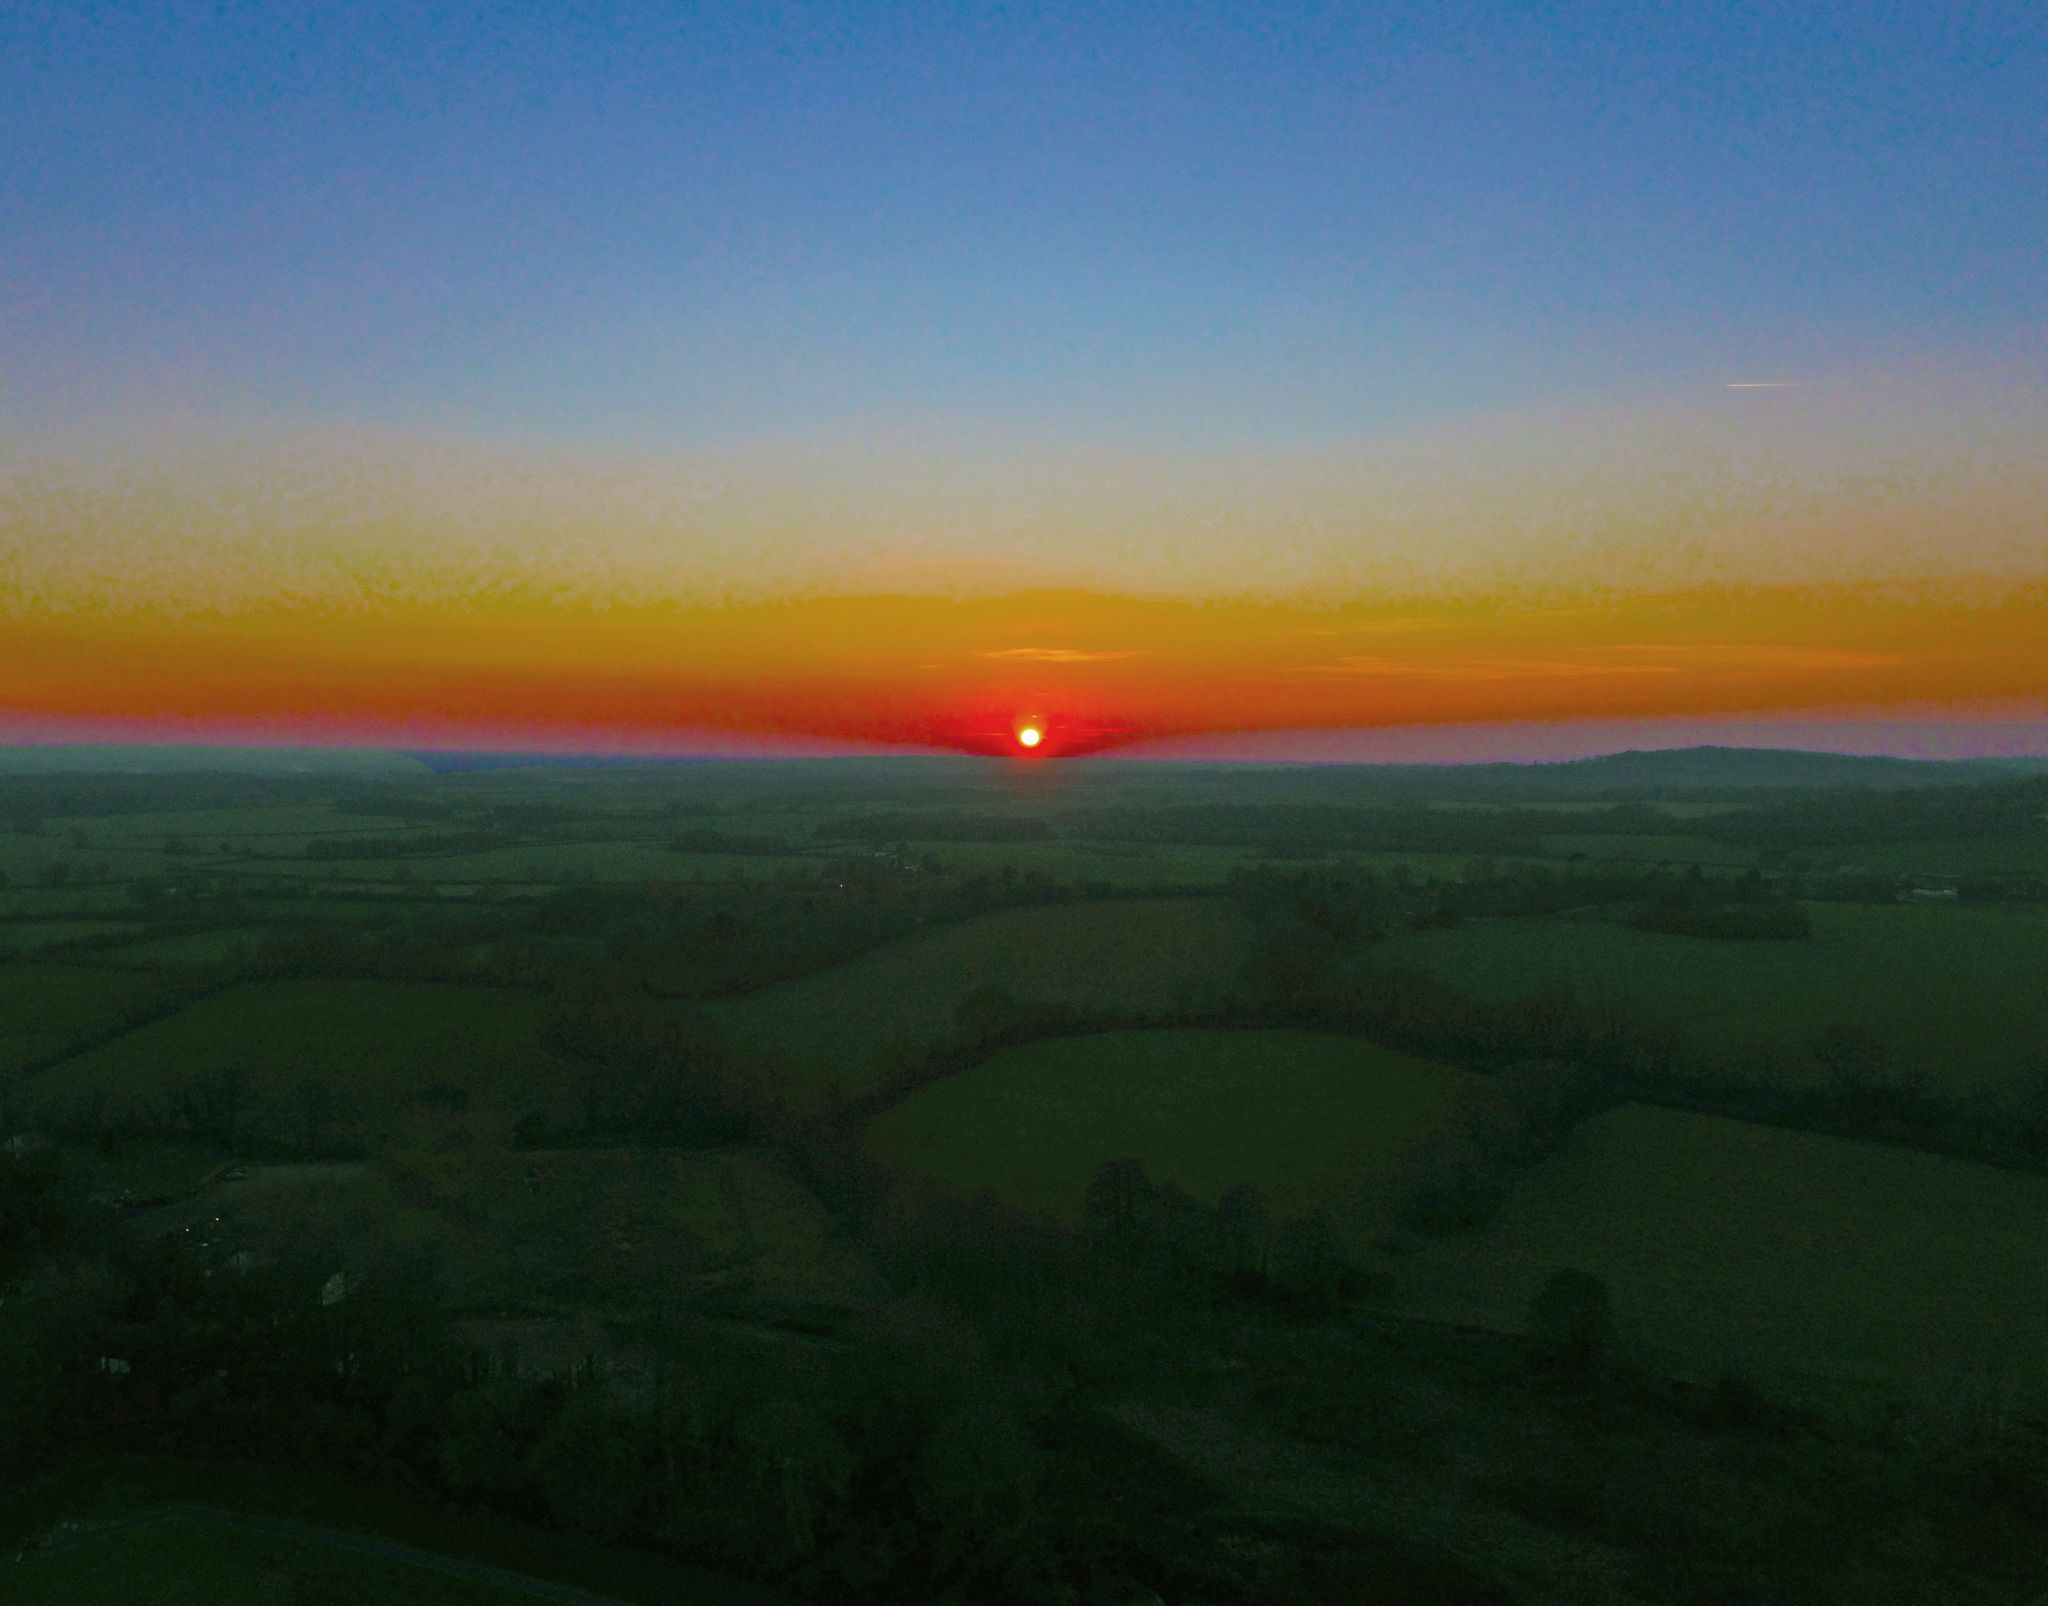 Sunset over the Weald of Kent